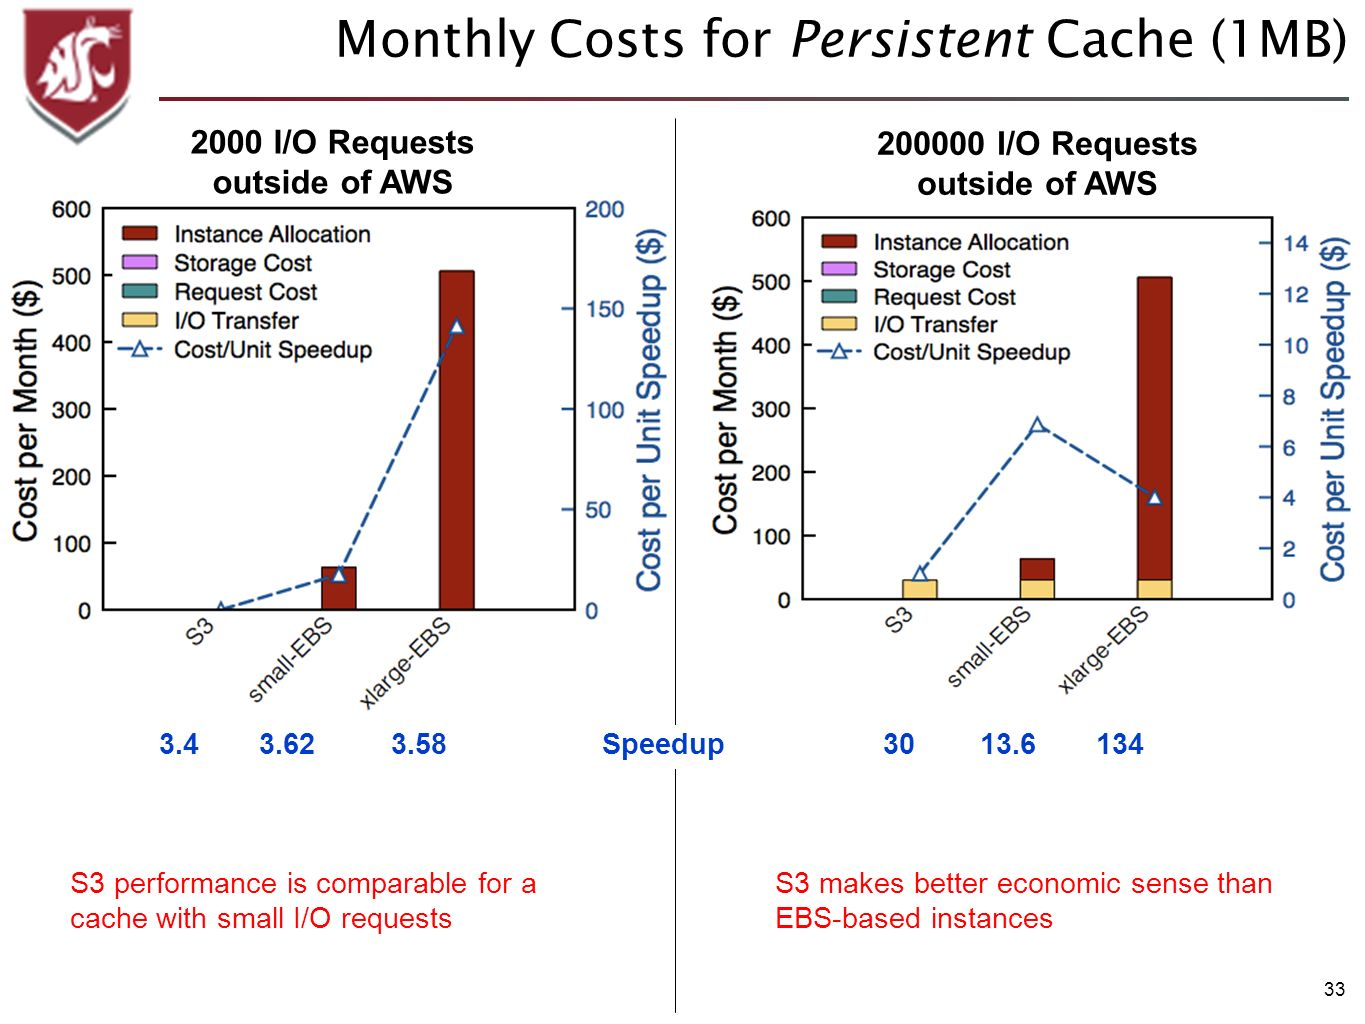 33 Monthly Costs for Persistent Cache (1MB) 200000 I/O Requests outside of AWS 2000 I/O Requests outside of AWS S3 makes better economic sense than EB